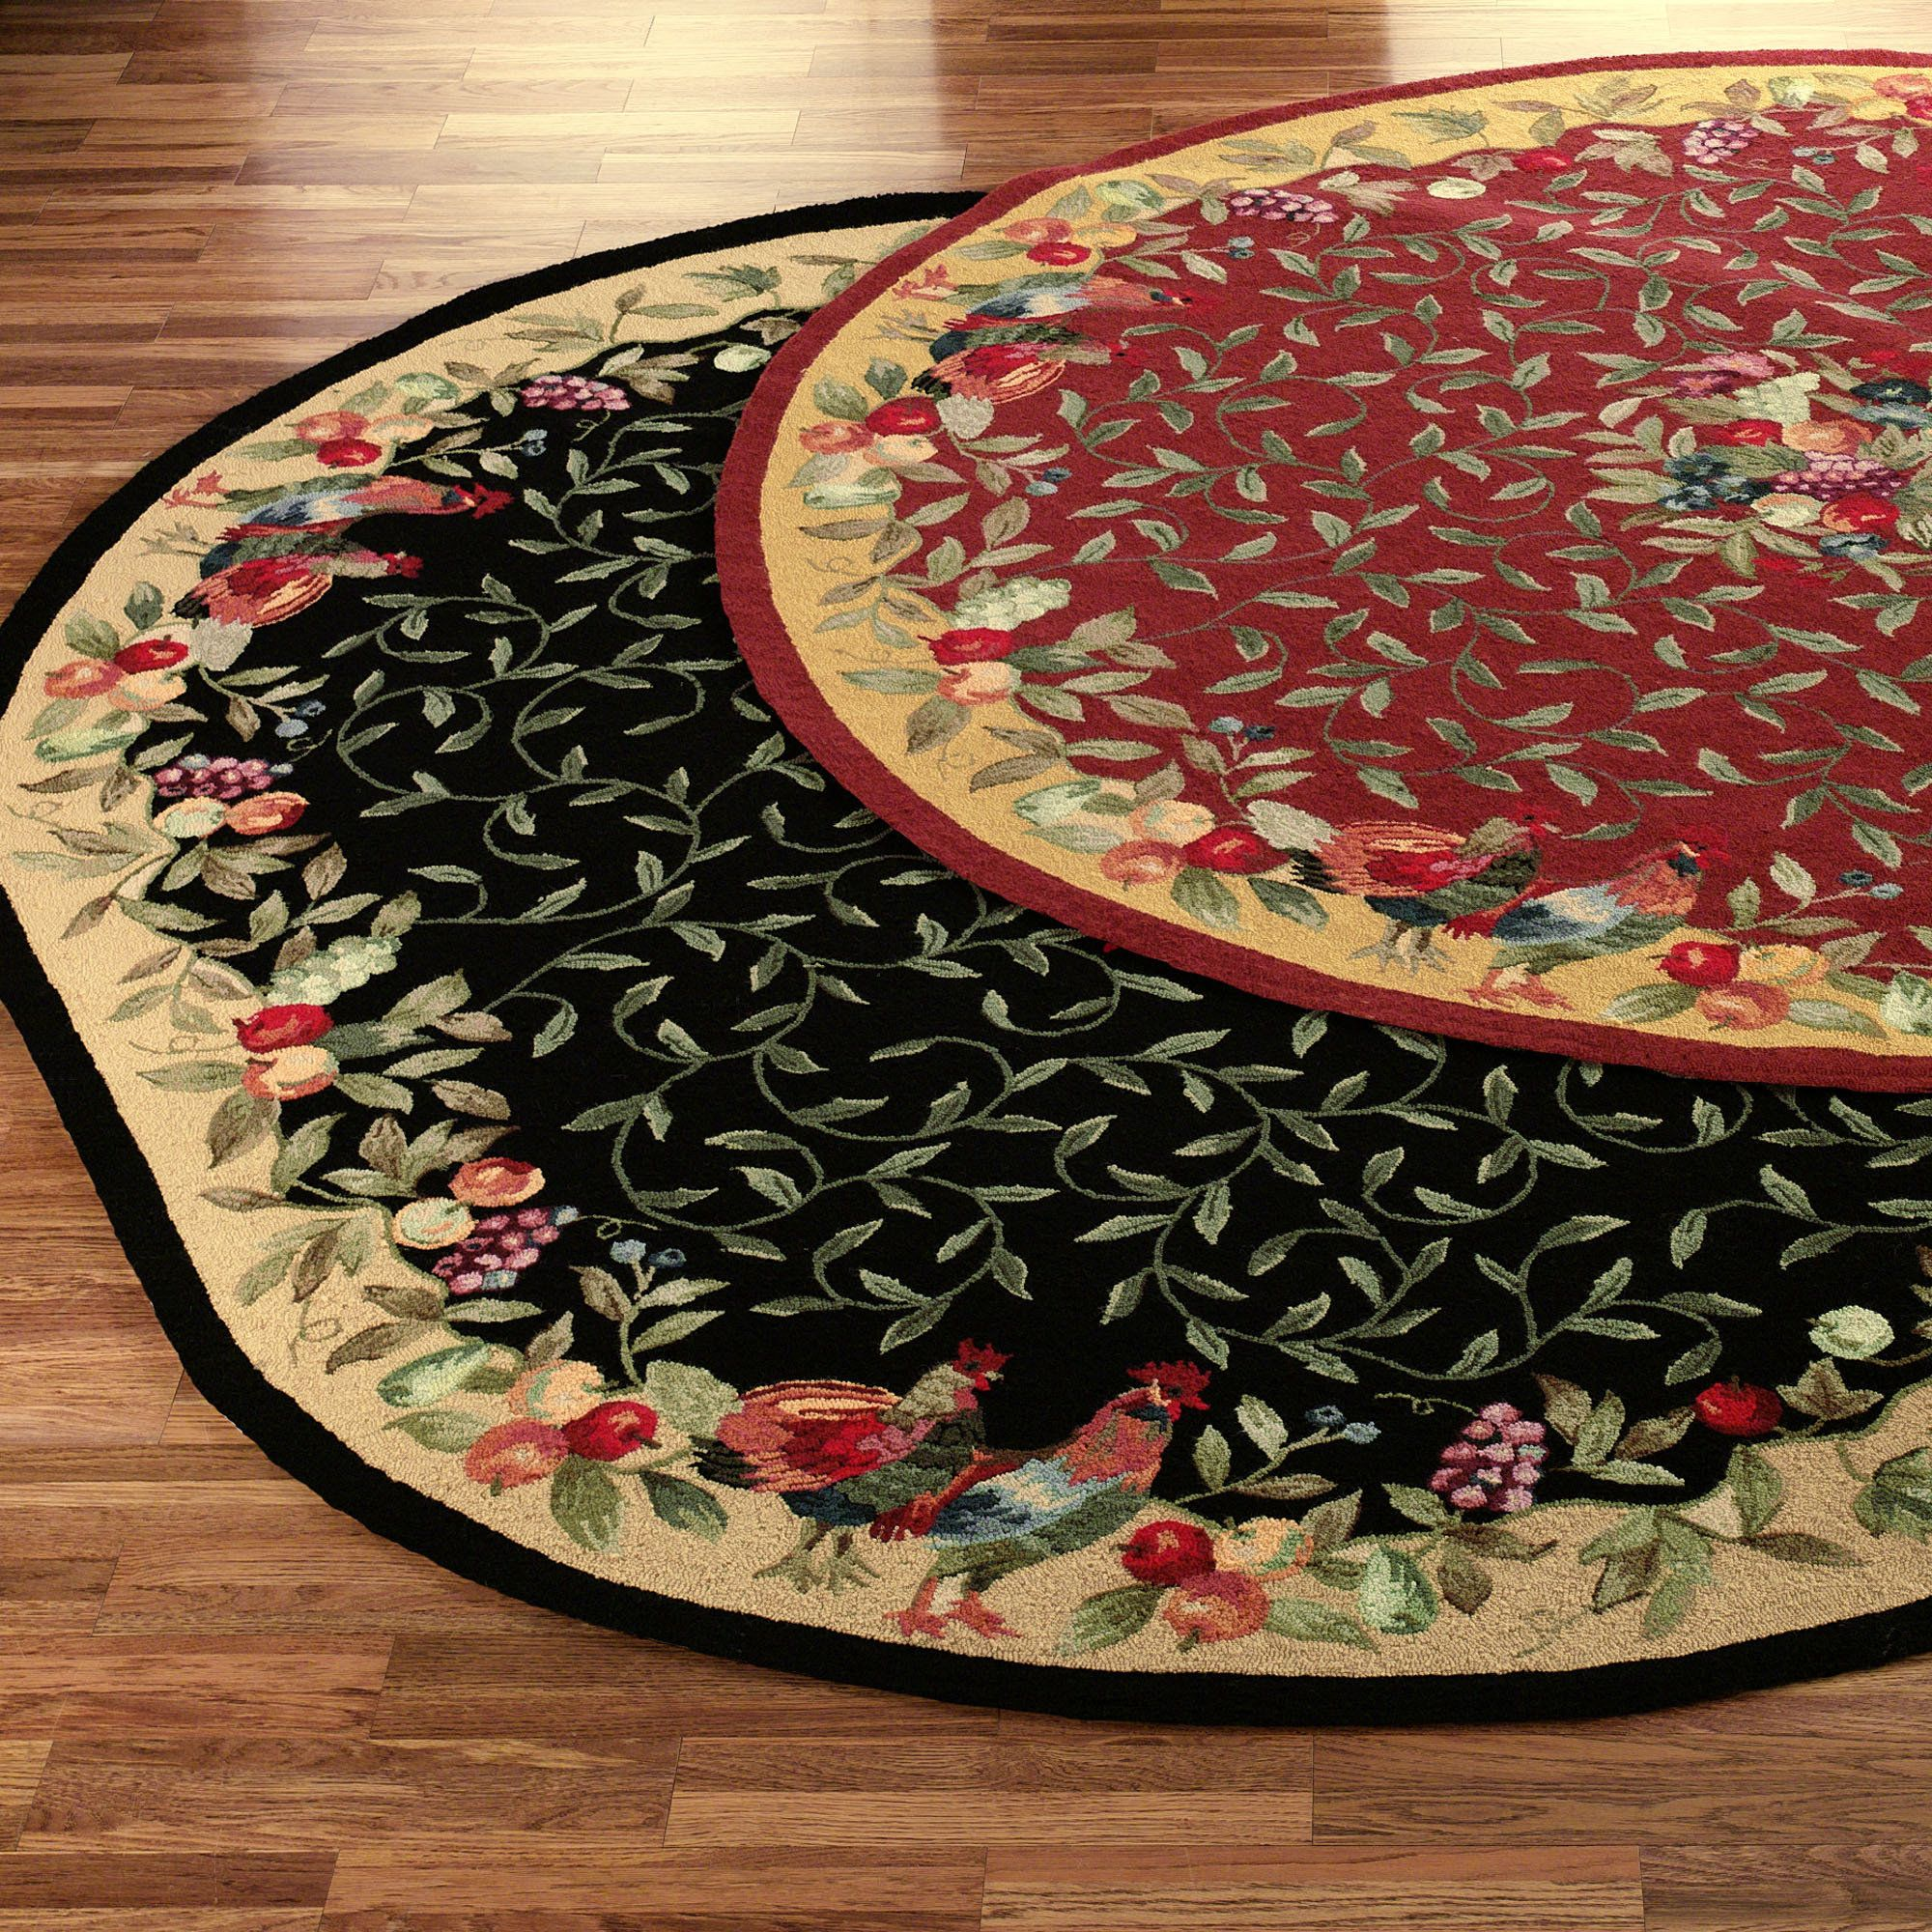 Print of Rooster Kitchen Rugs Creating a Country Kitchen Nuance ...